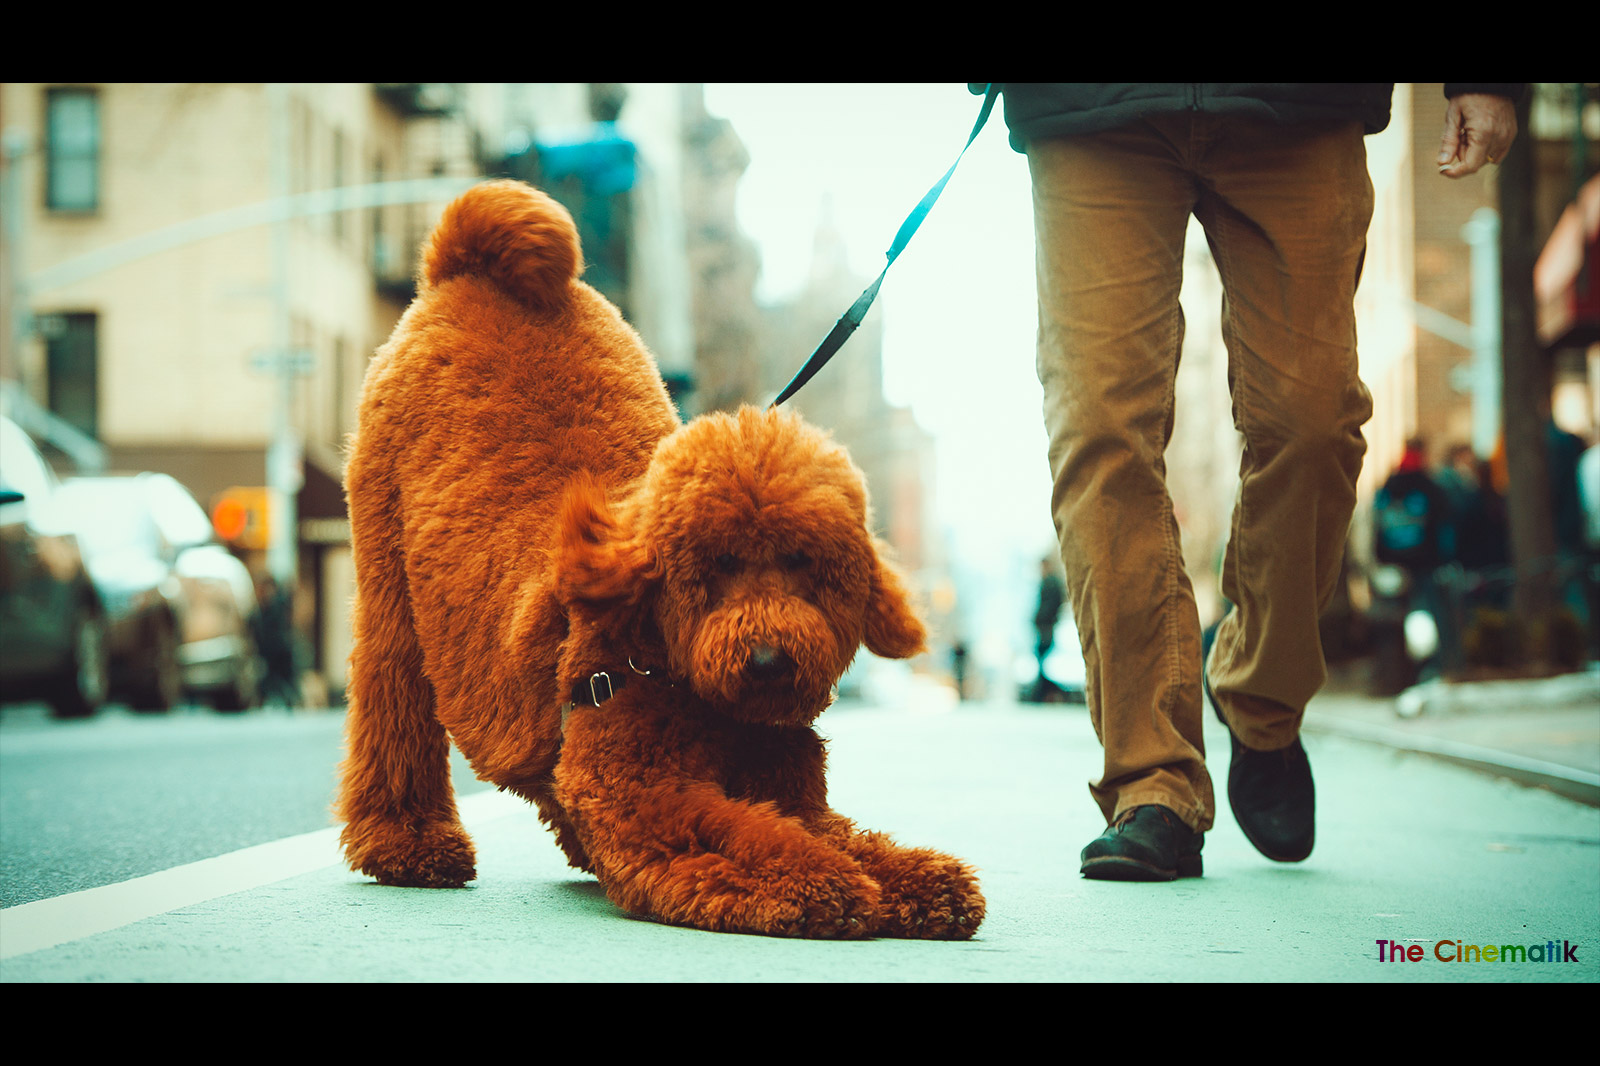 Gorgeous furry Labradoodle funny pose in New York cinematic photograph by Kamal Lahmadi/THE CINEMATIK